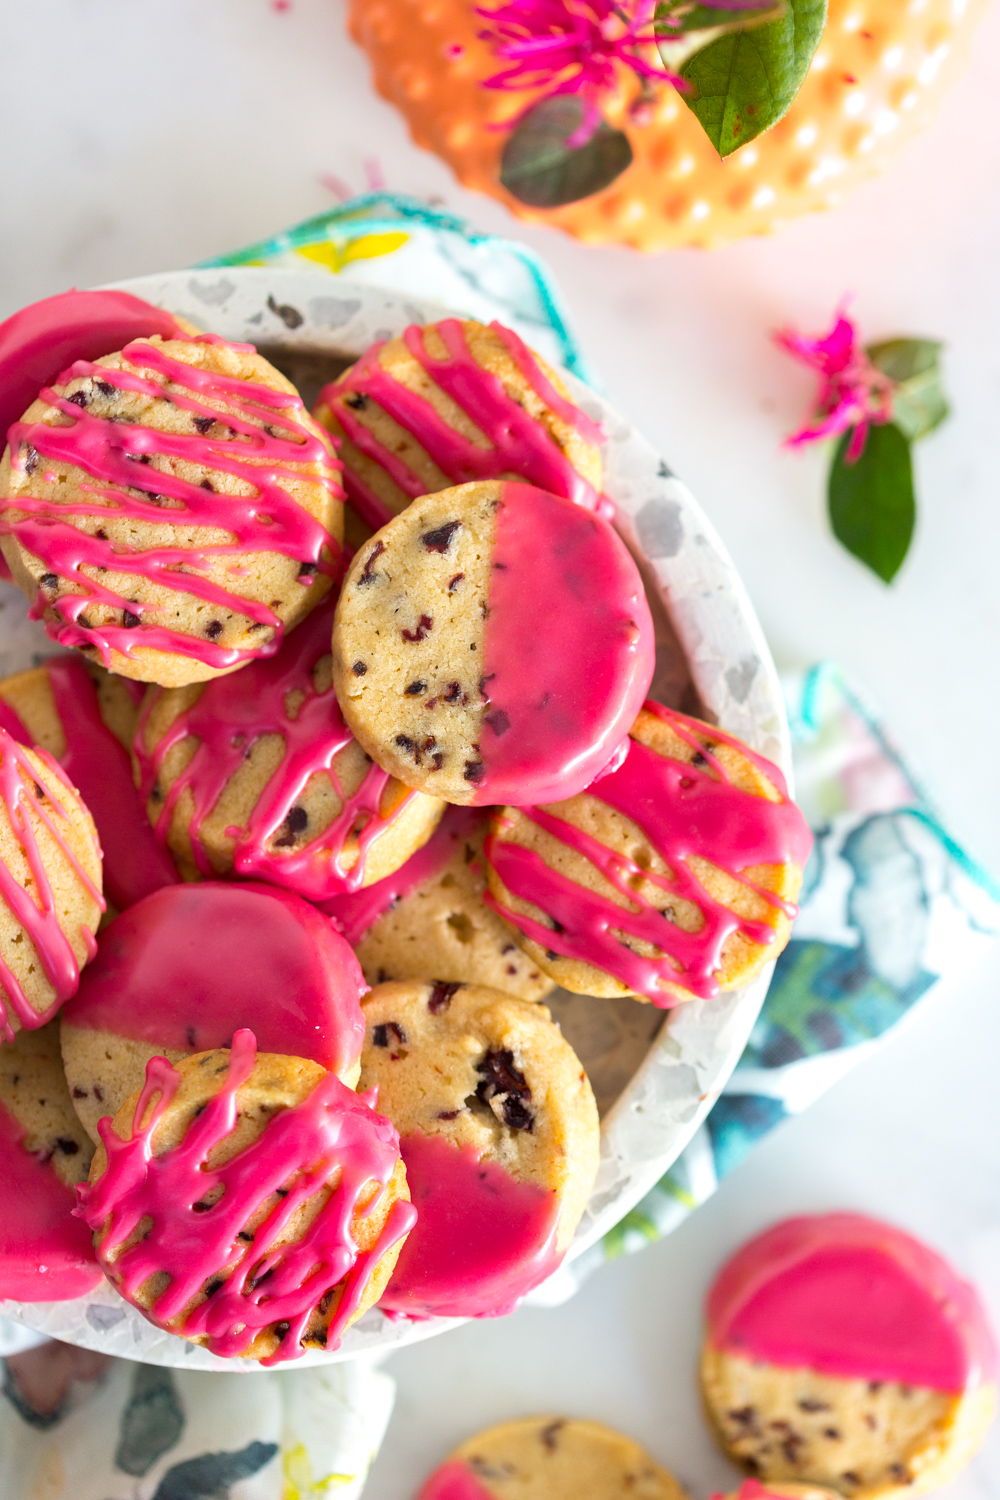 Glazed Hibiscus Shortbread Cookies - Baking the Goods